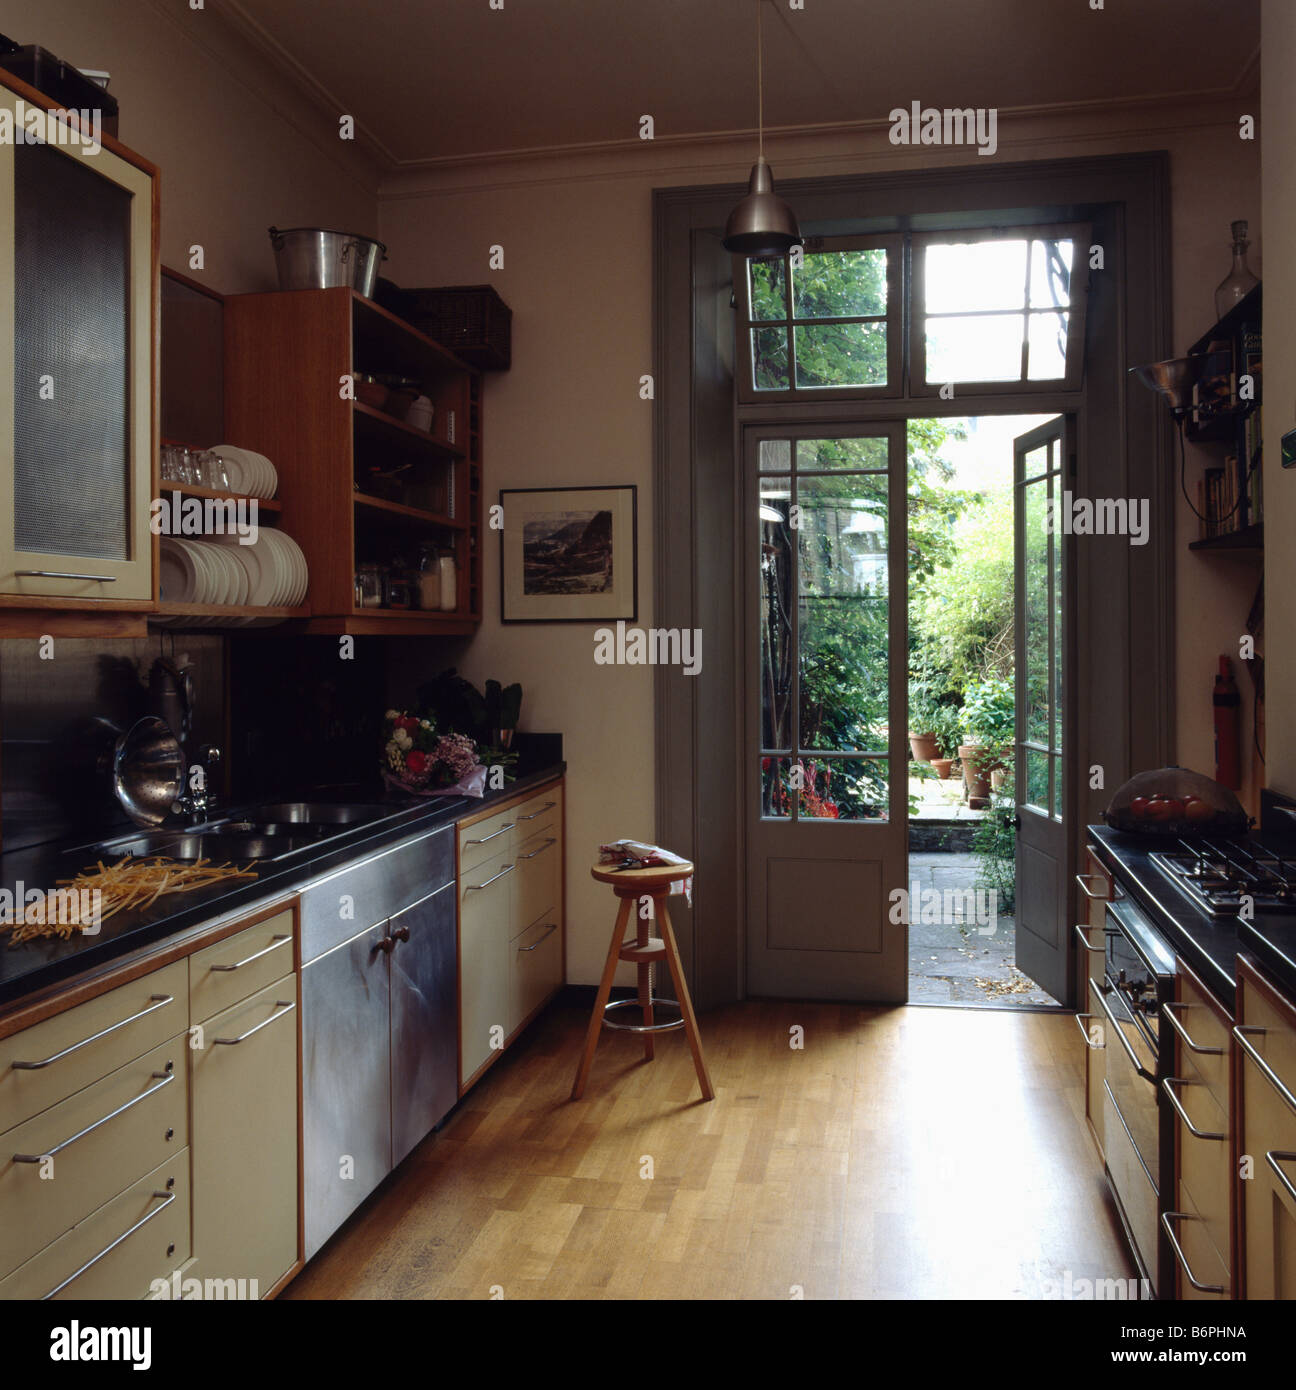 Kitchen With French Doors: Wooden Flooring In Modern Galley Kitchen With French Doors